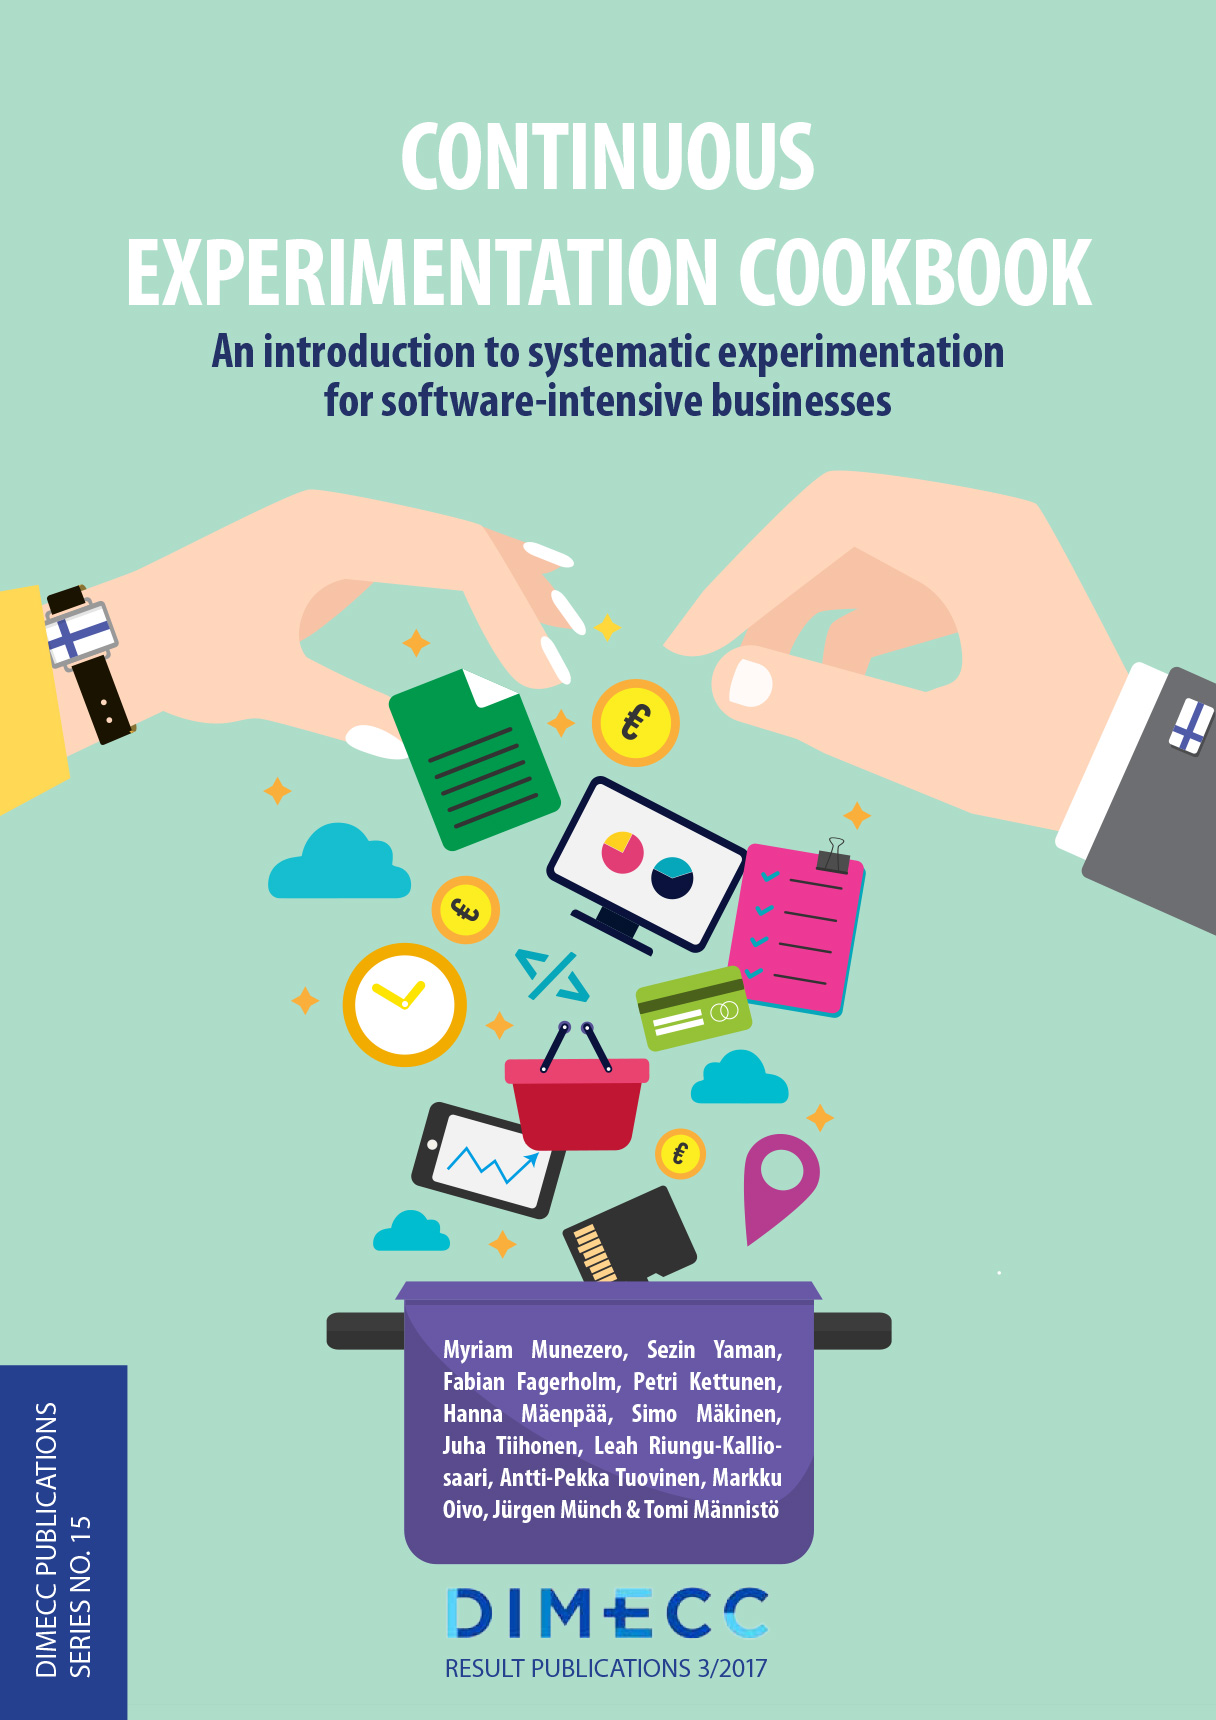 n4s Continuous Experimentation Cookbook